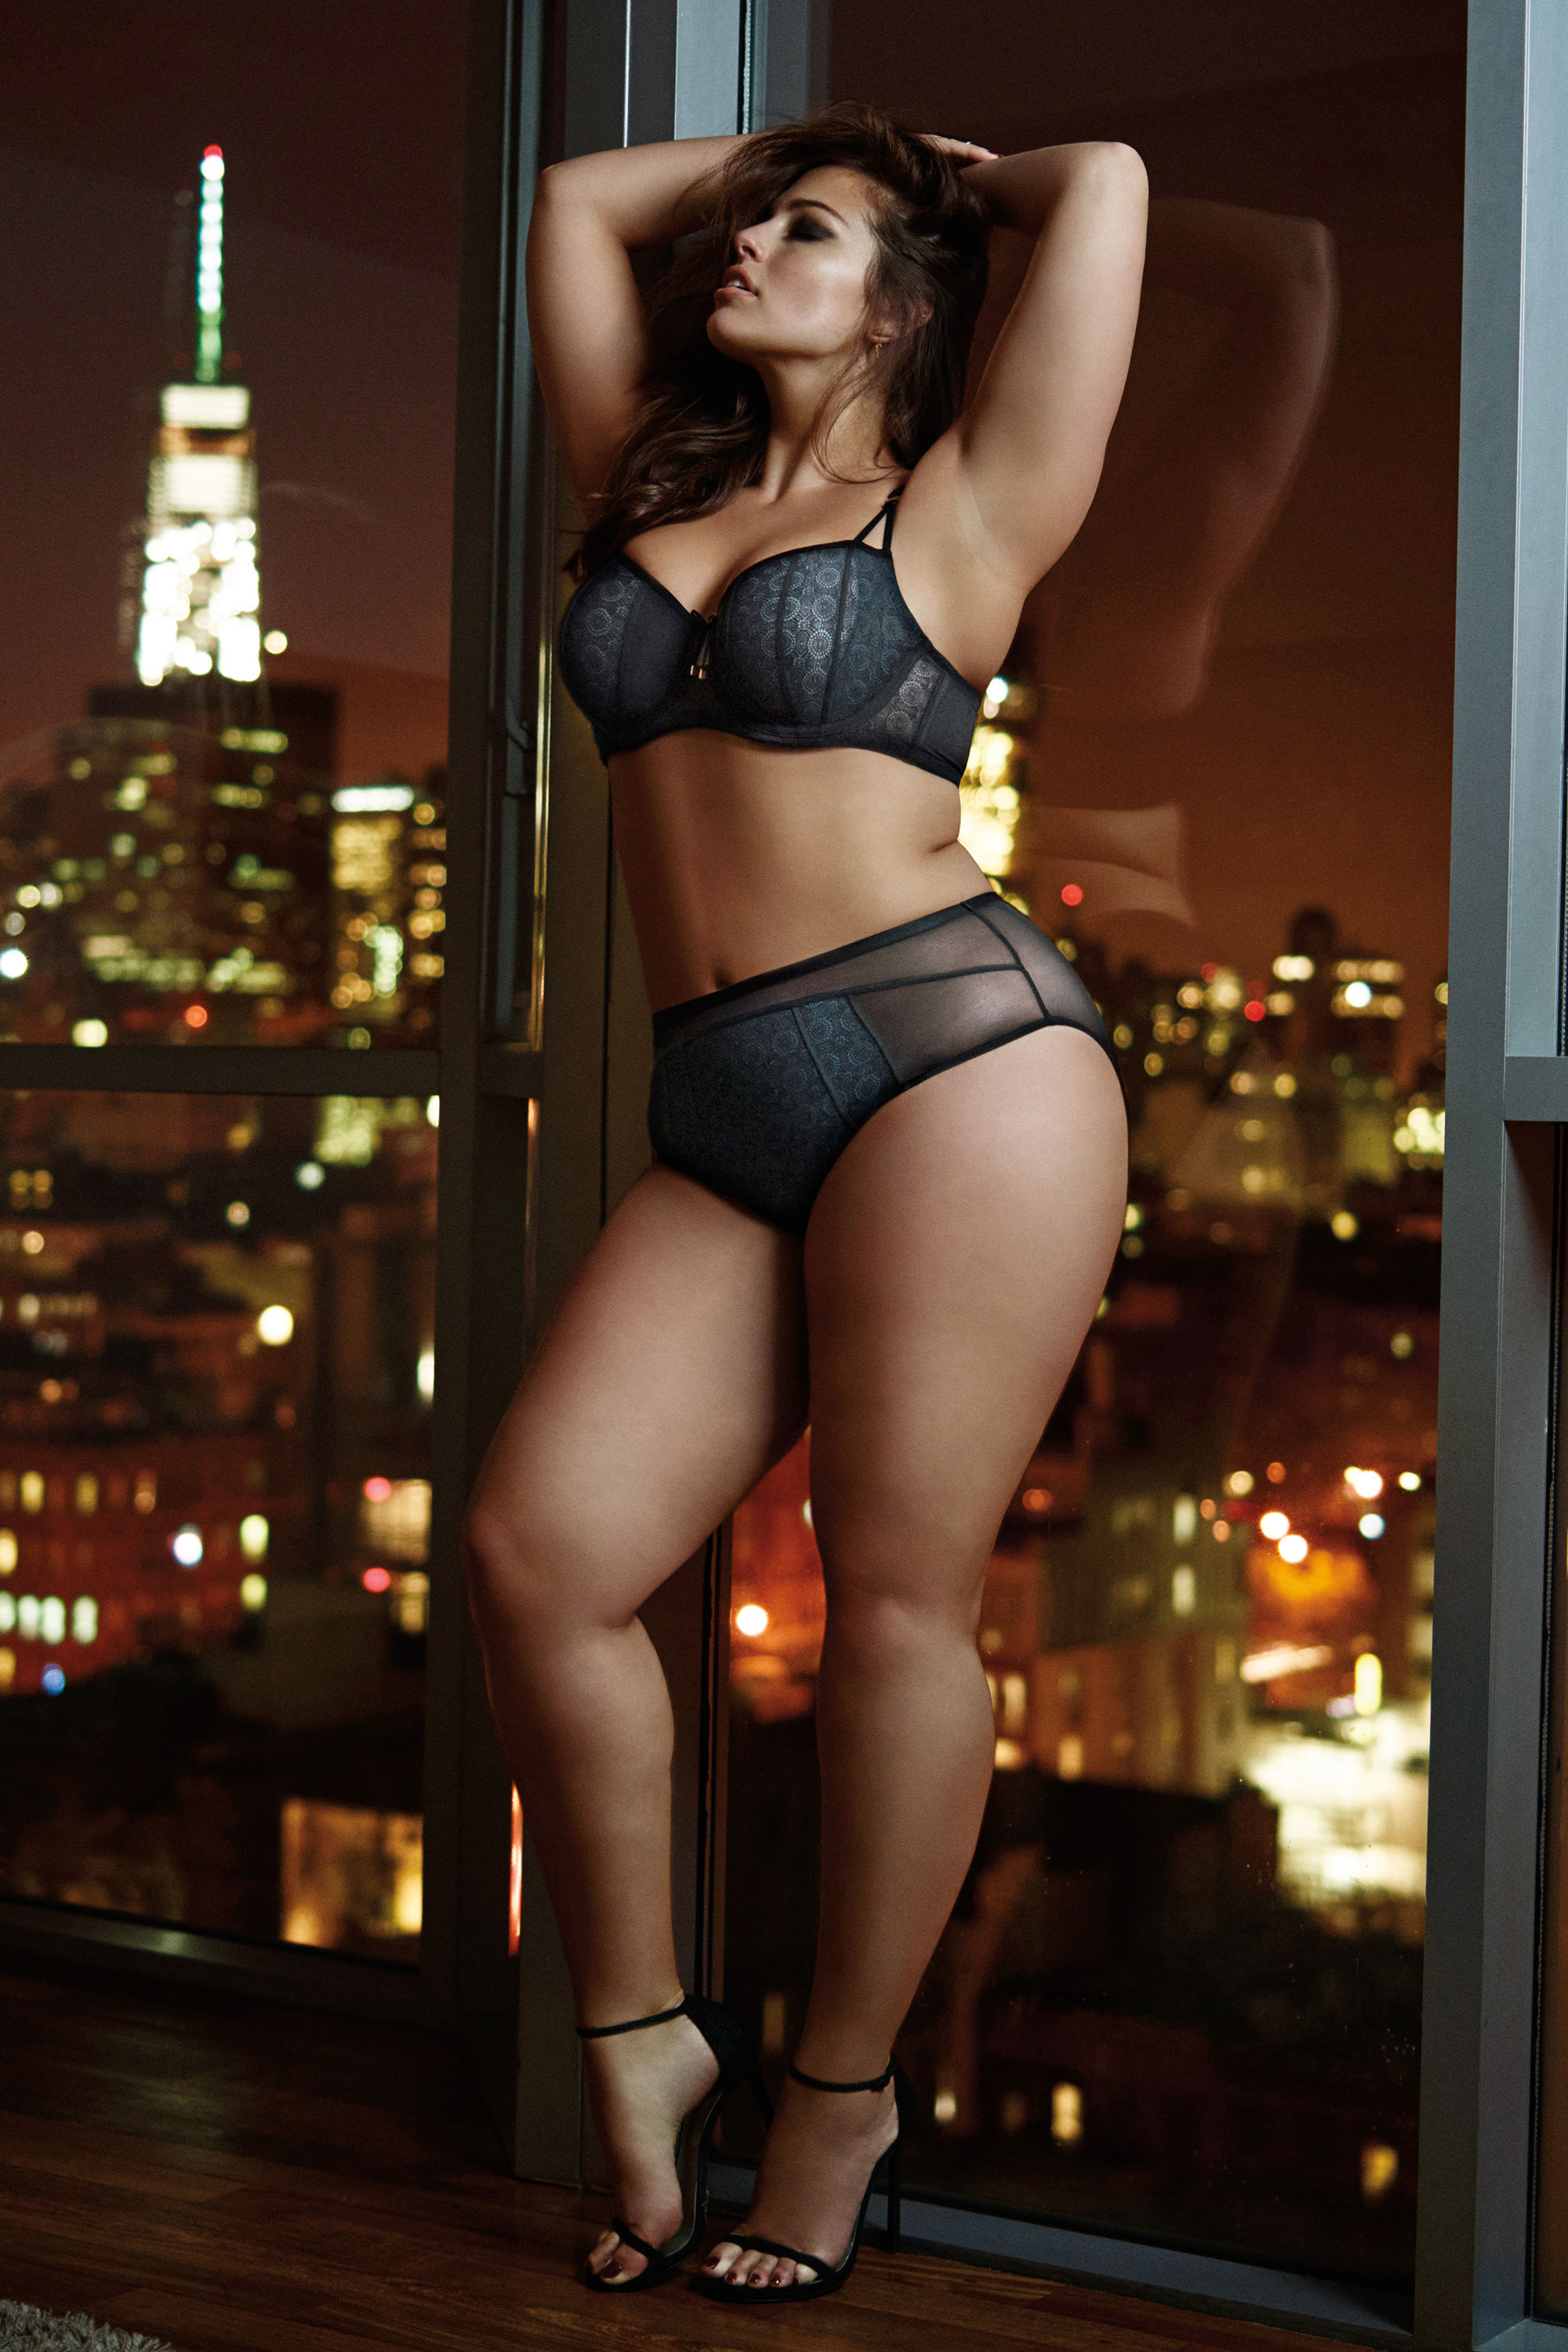 Toyota Jan Hot Photos >> 25 Sexy Valentine's Day Lingerie Looks for Women With Big Busts